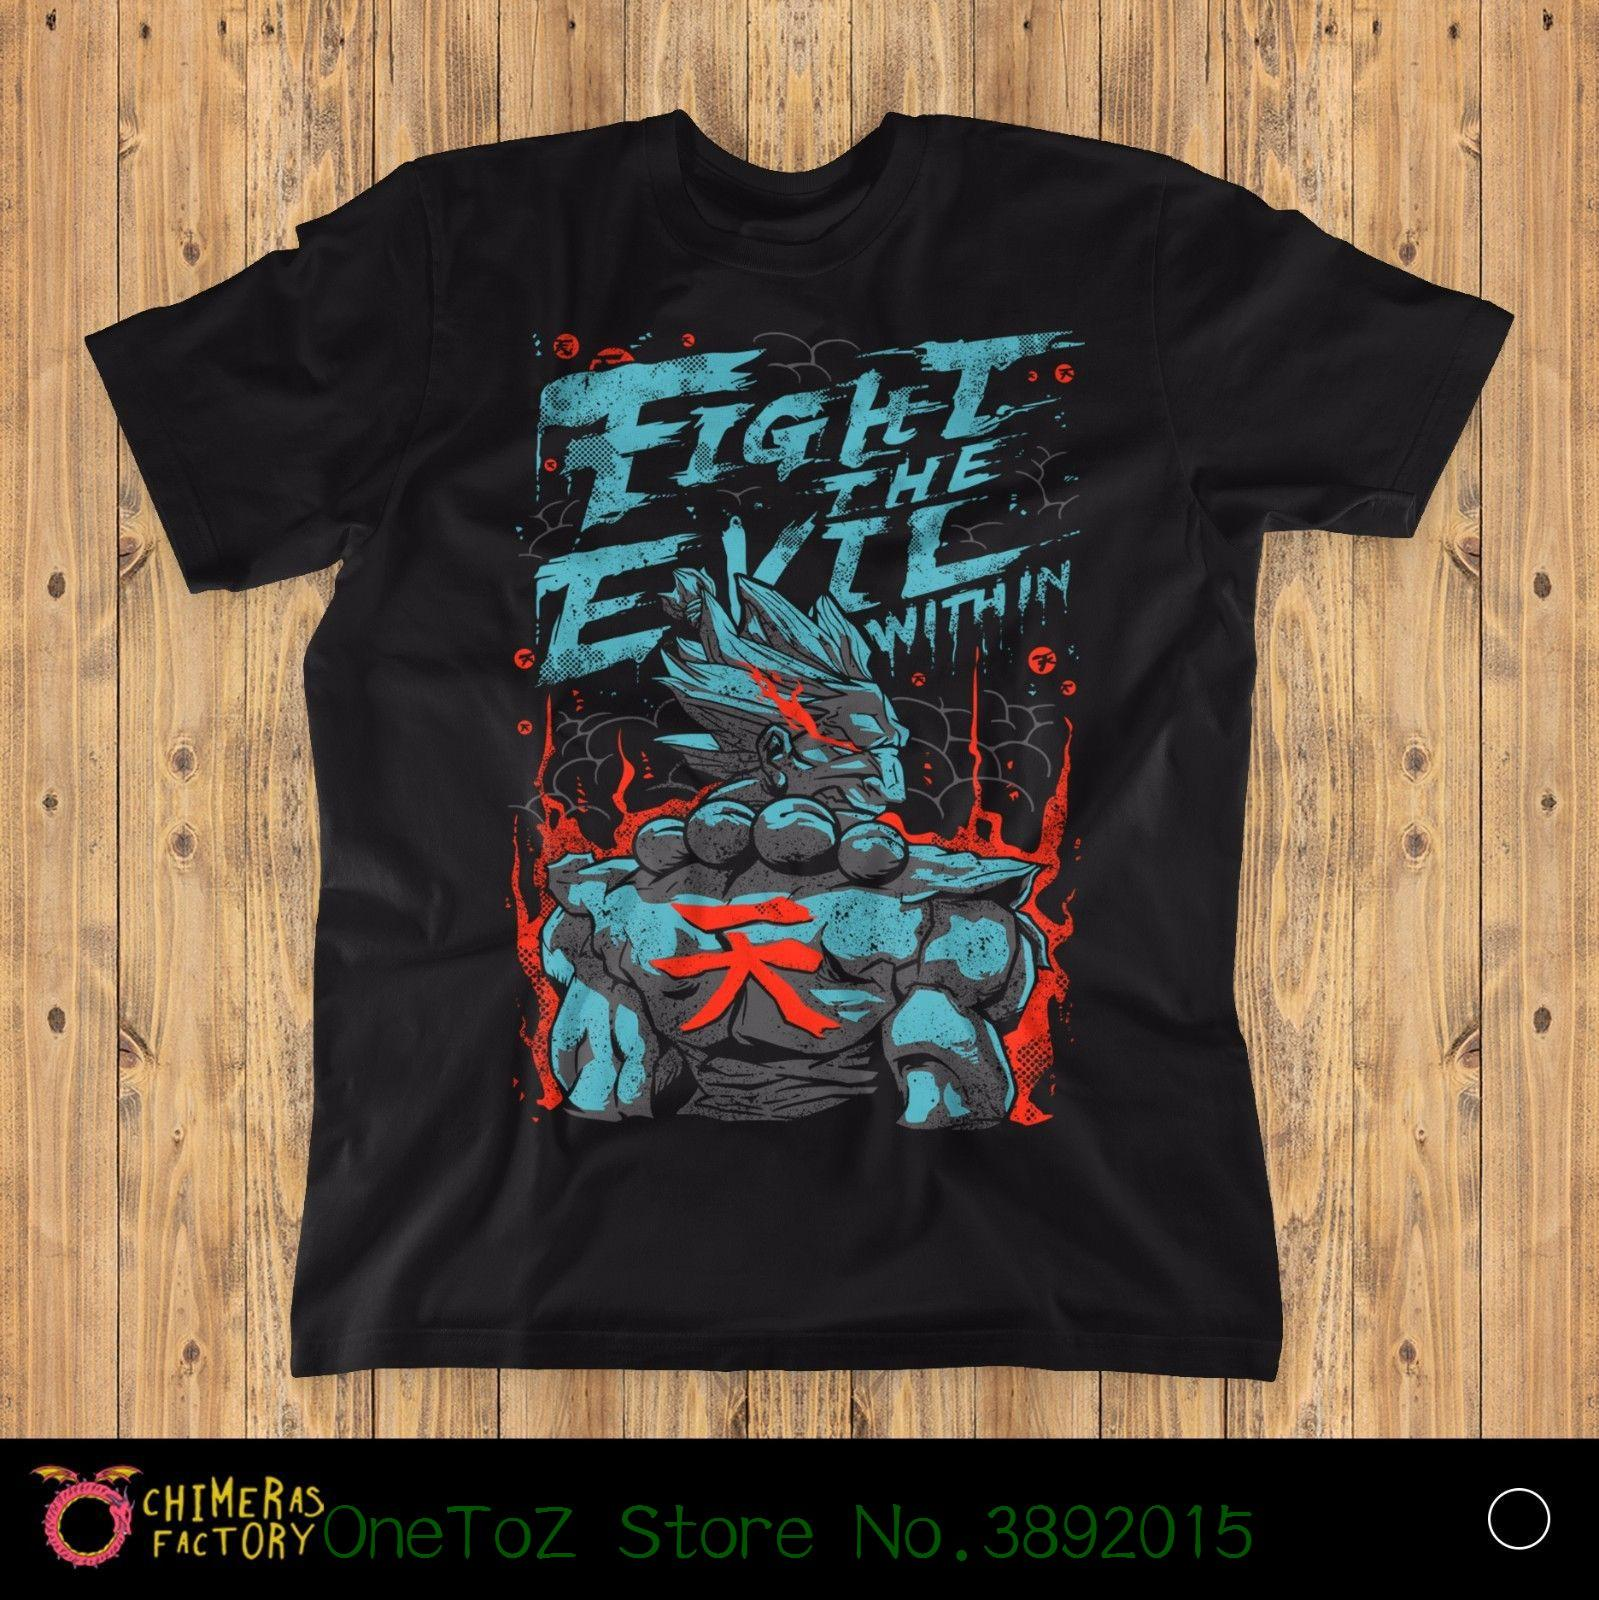 Tee Shirt Unisex More Size And Colors Fight The Evil Within Unisex T